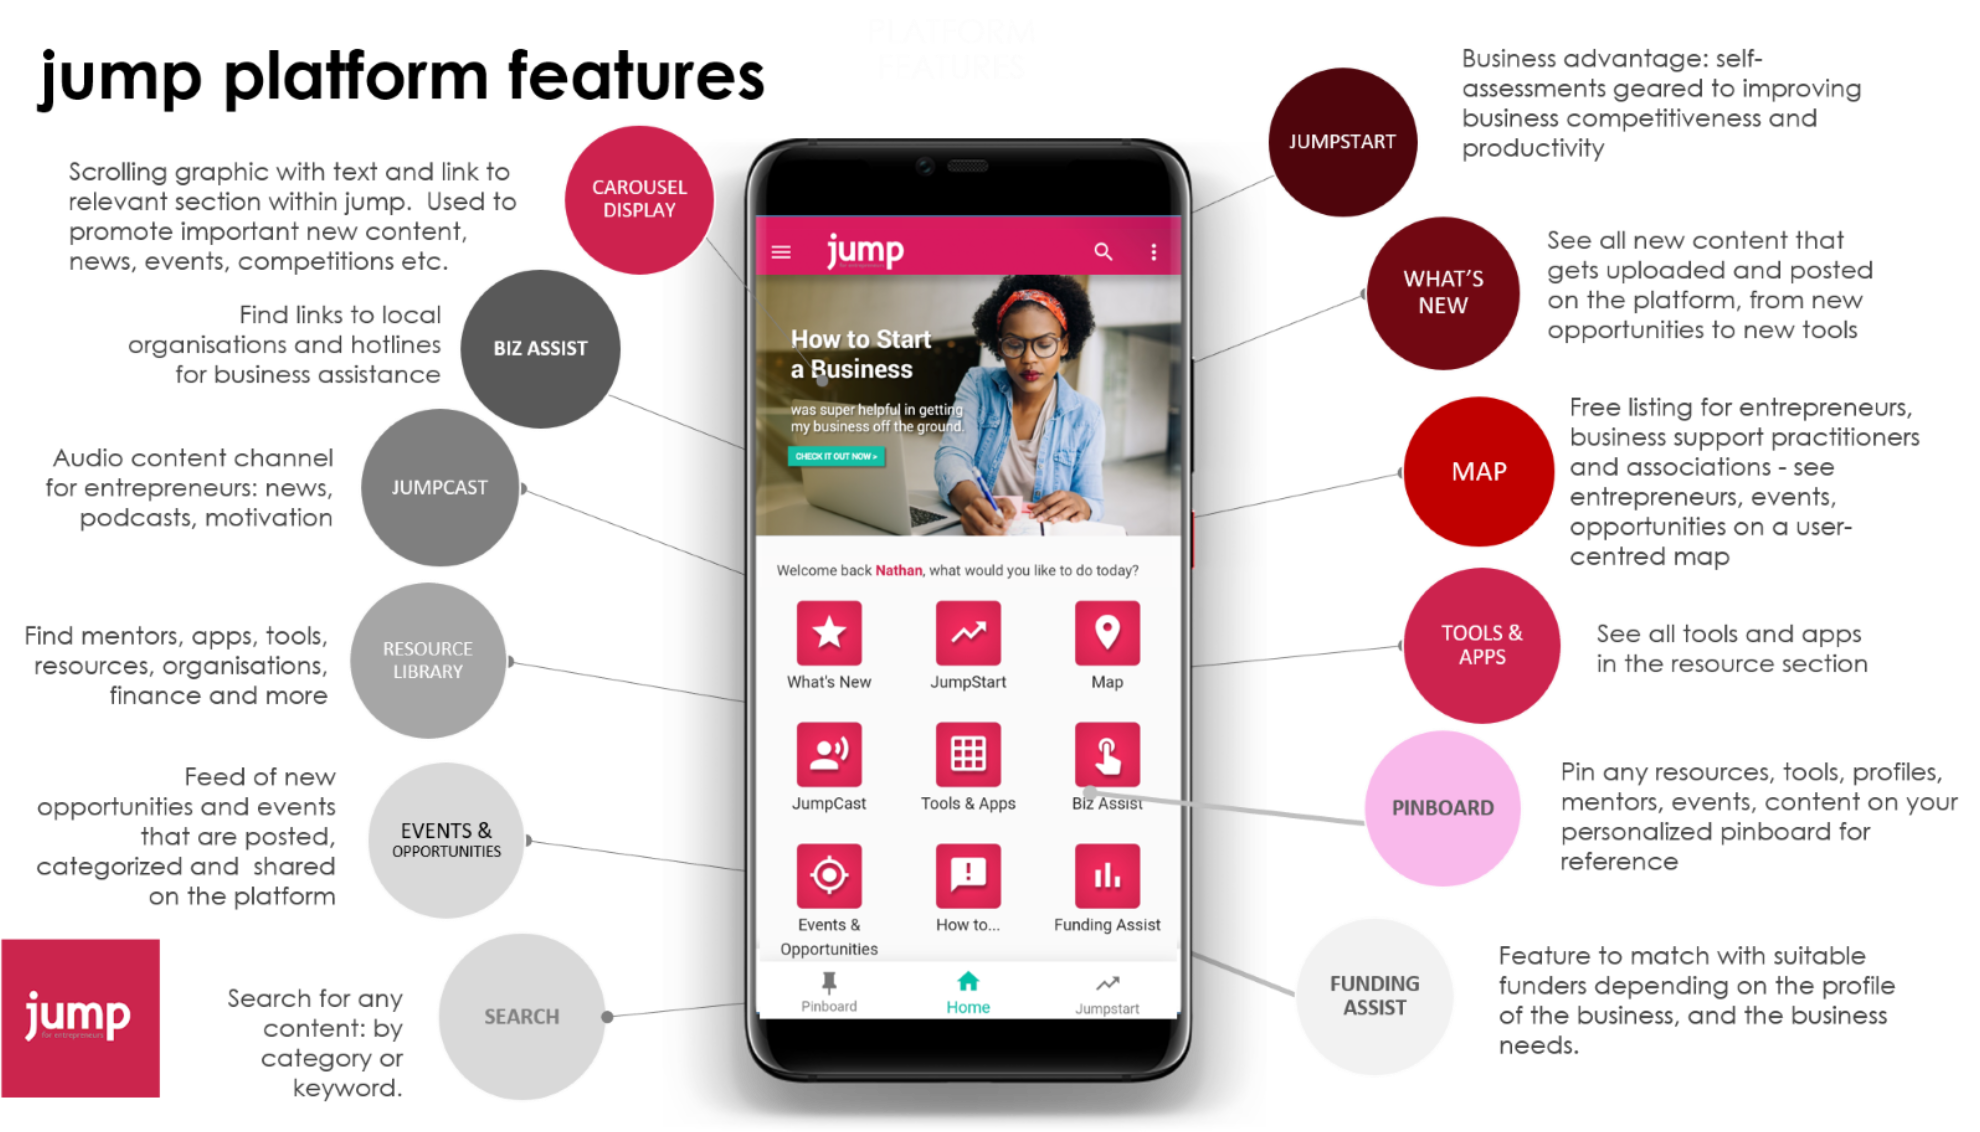 Image of a cellphone phone depicting the JUMP APP and its features